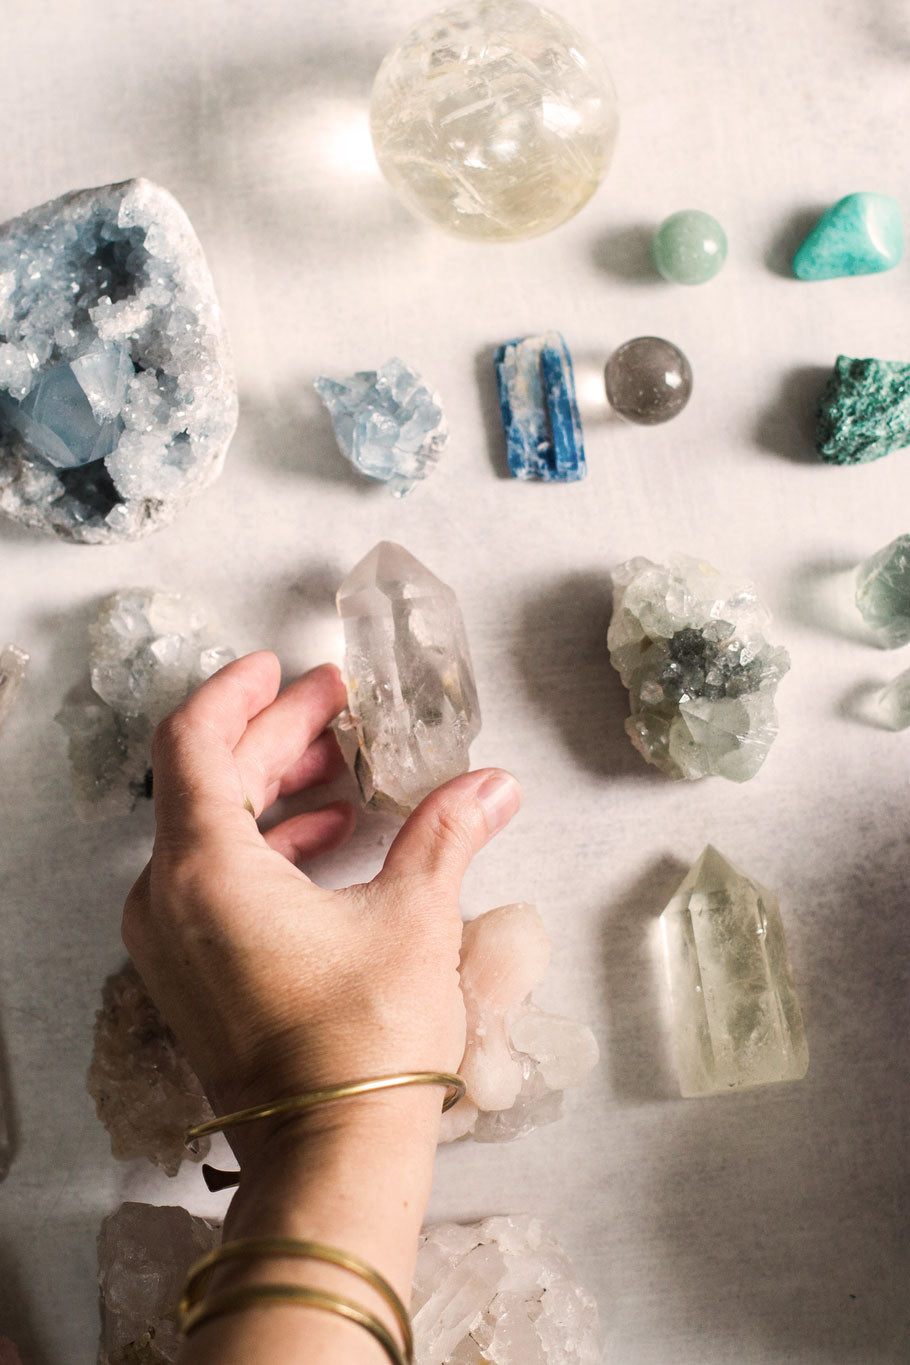 How to use quartz crystals for healing and how to choose the right crystal